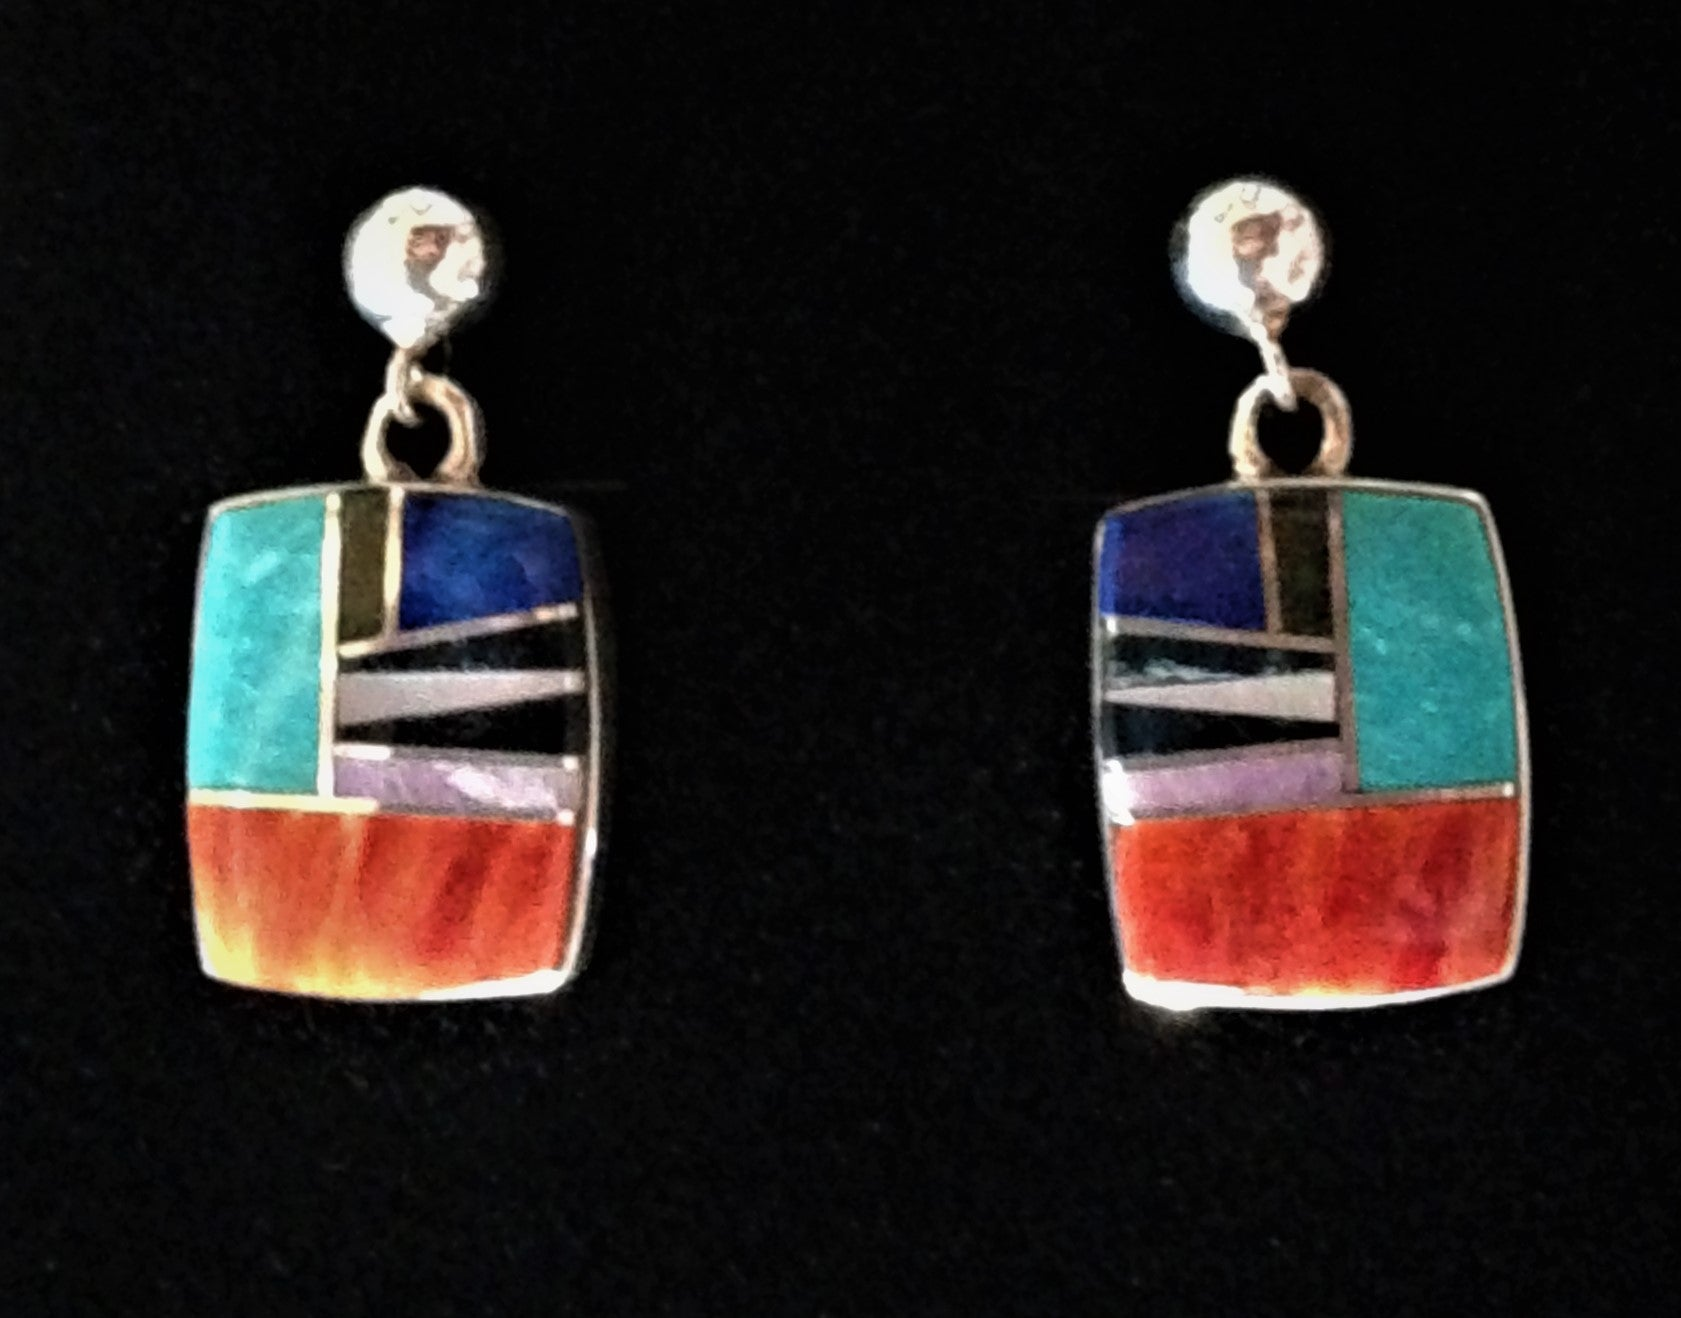 Native American Handcrafted Sterling Silver jewelry with genuine stones.